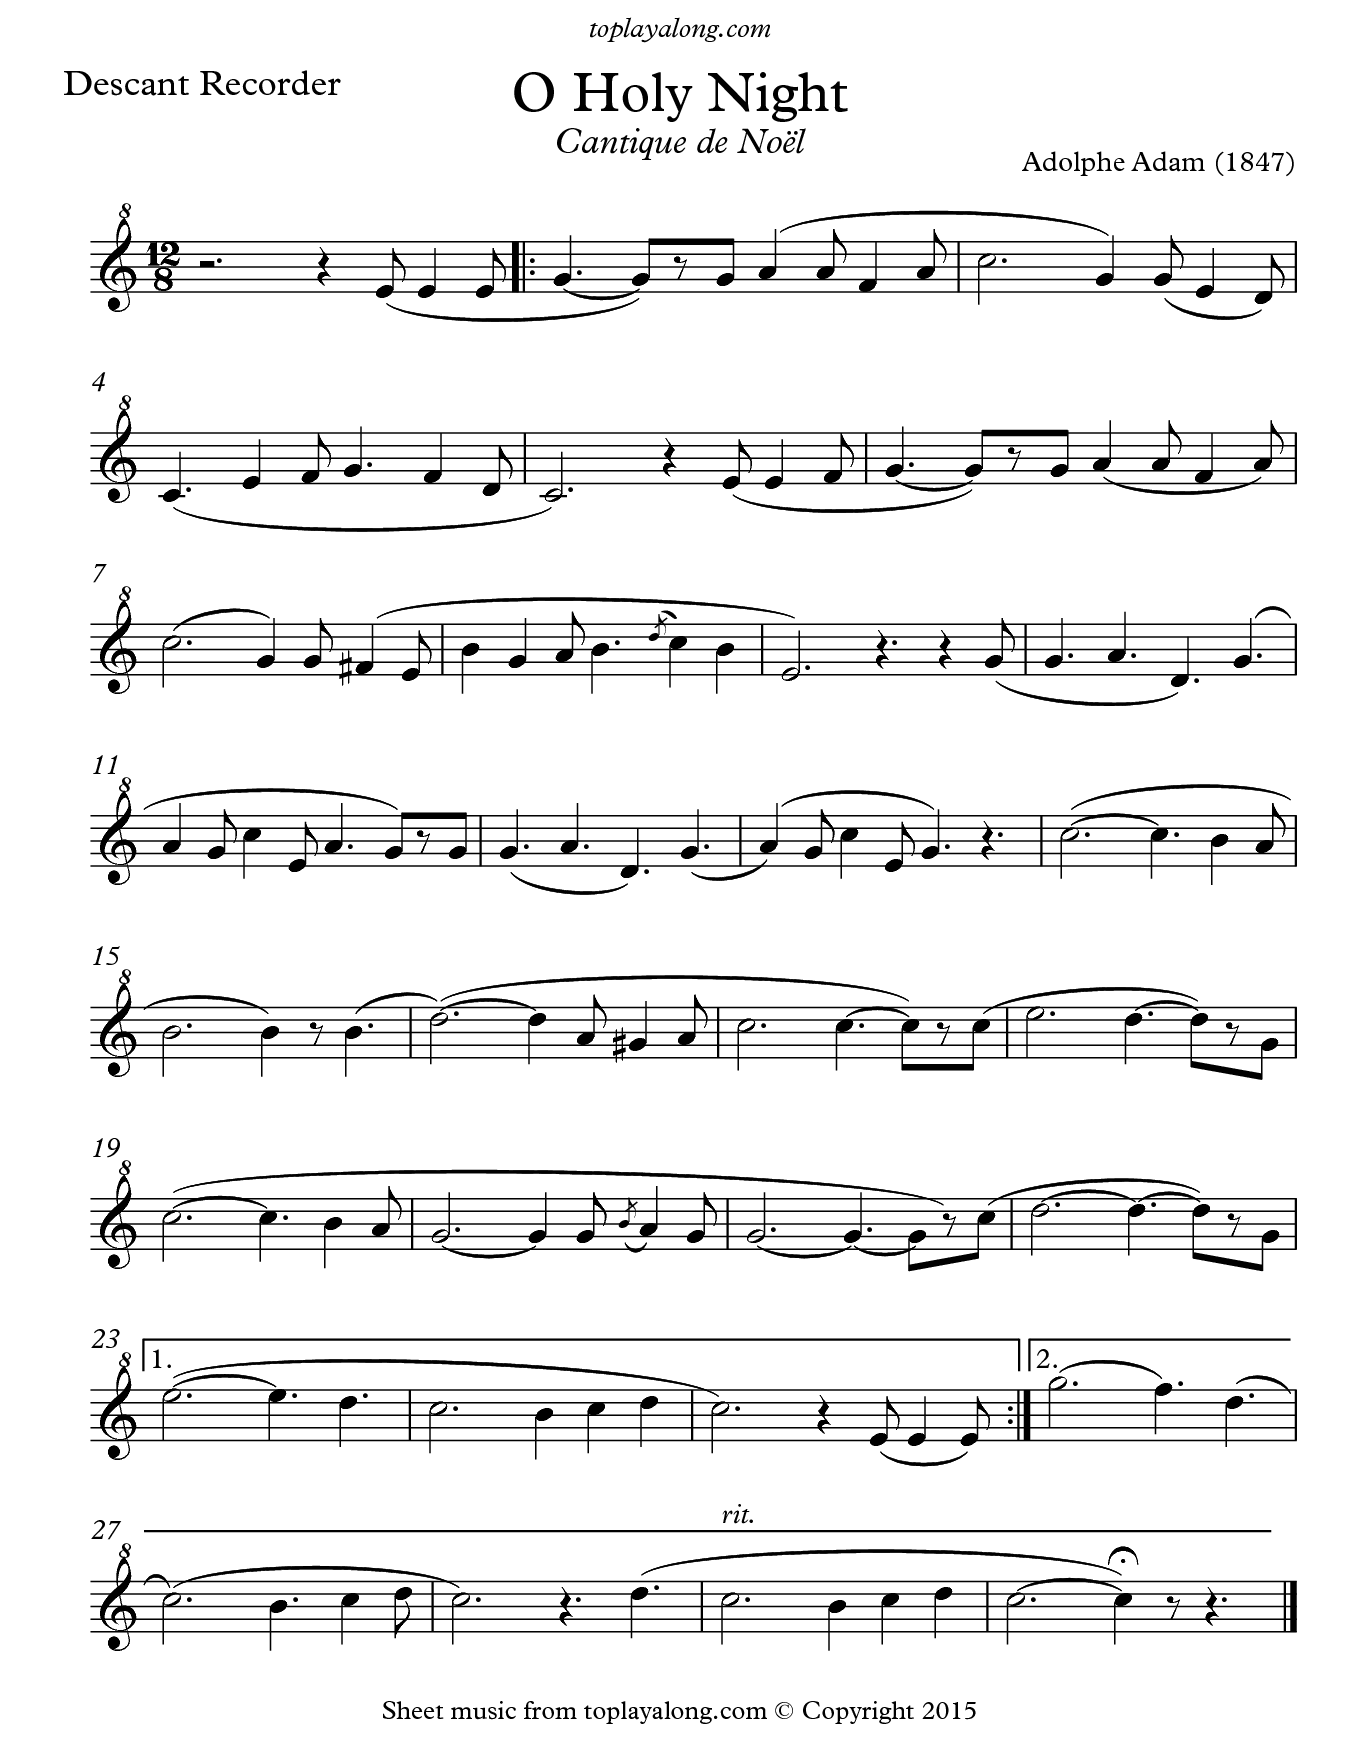 O Holy Night (Cantique de Noel) by Adolphe Adam. Sheet music for Recorder, page 1.